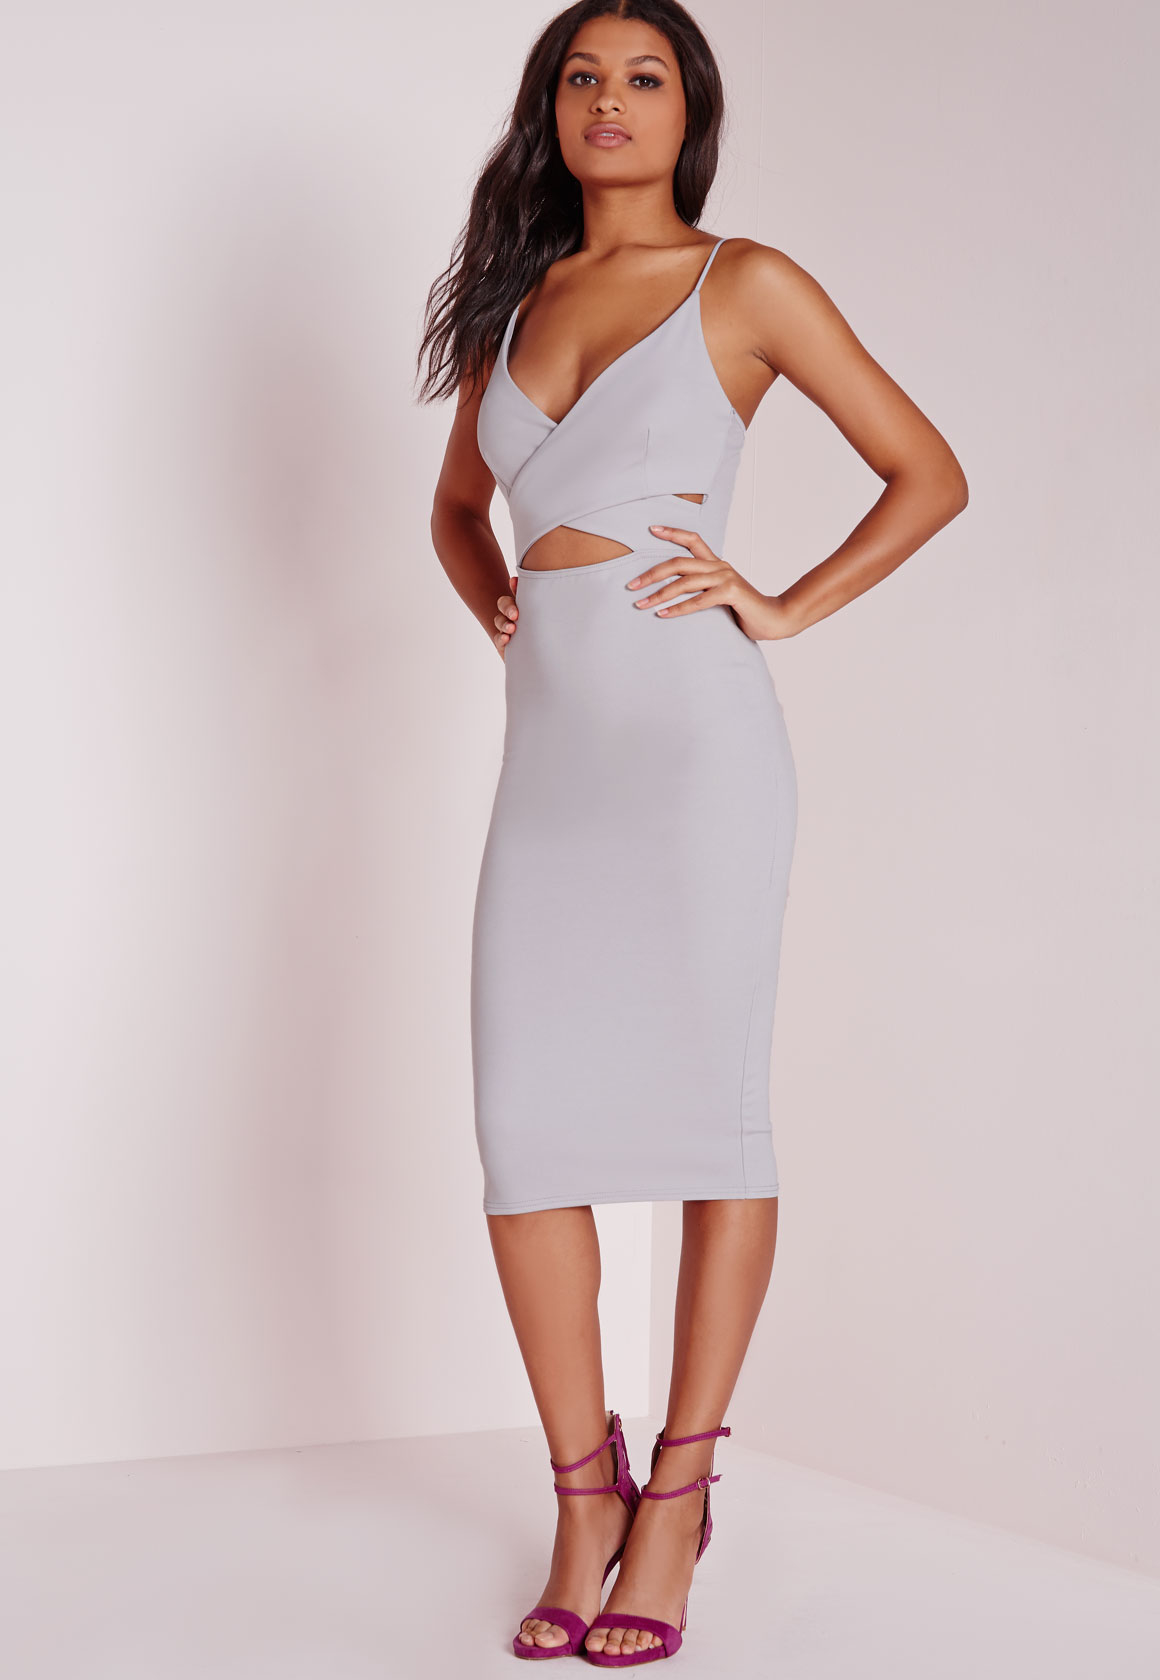 Lyst - Missguided Scuba Strappy Cut Out Midi Dress Grey in Gray ac56ef56dcb